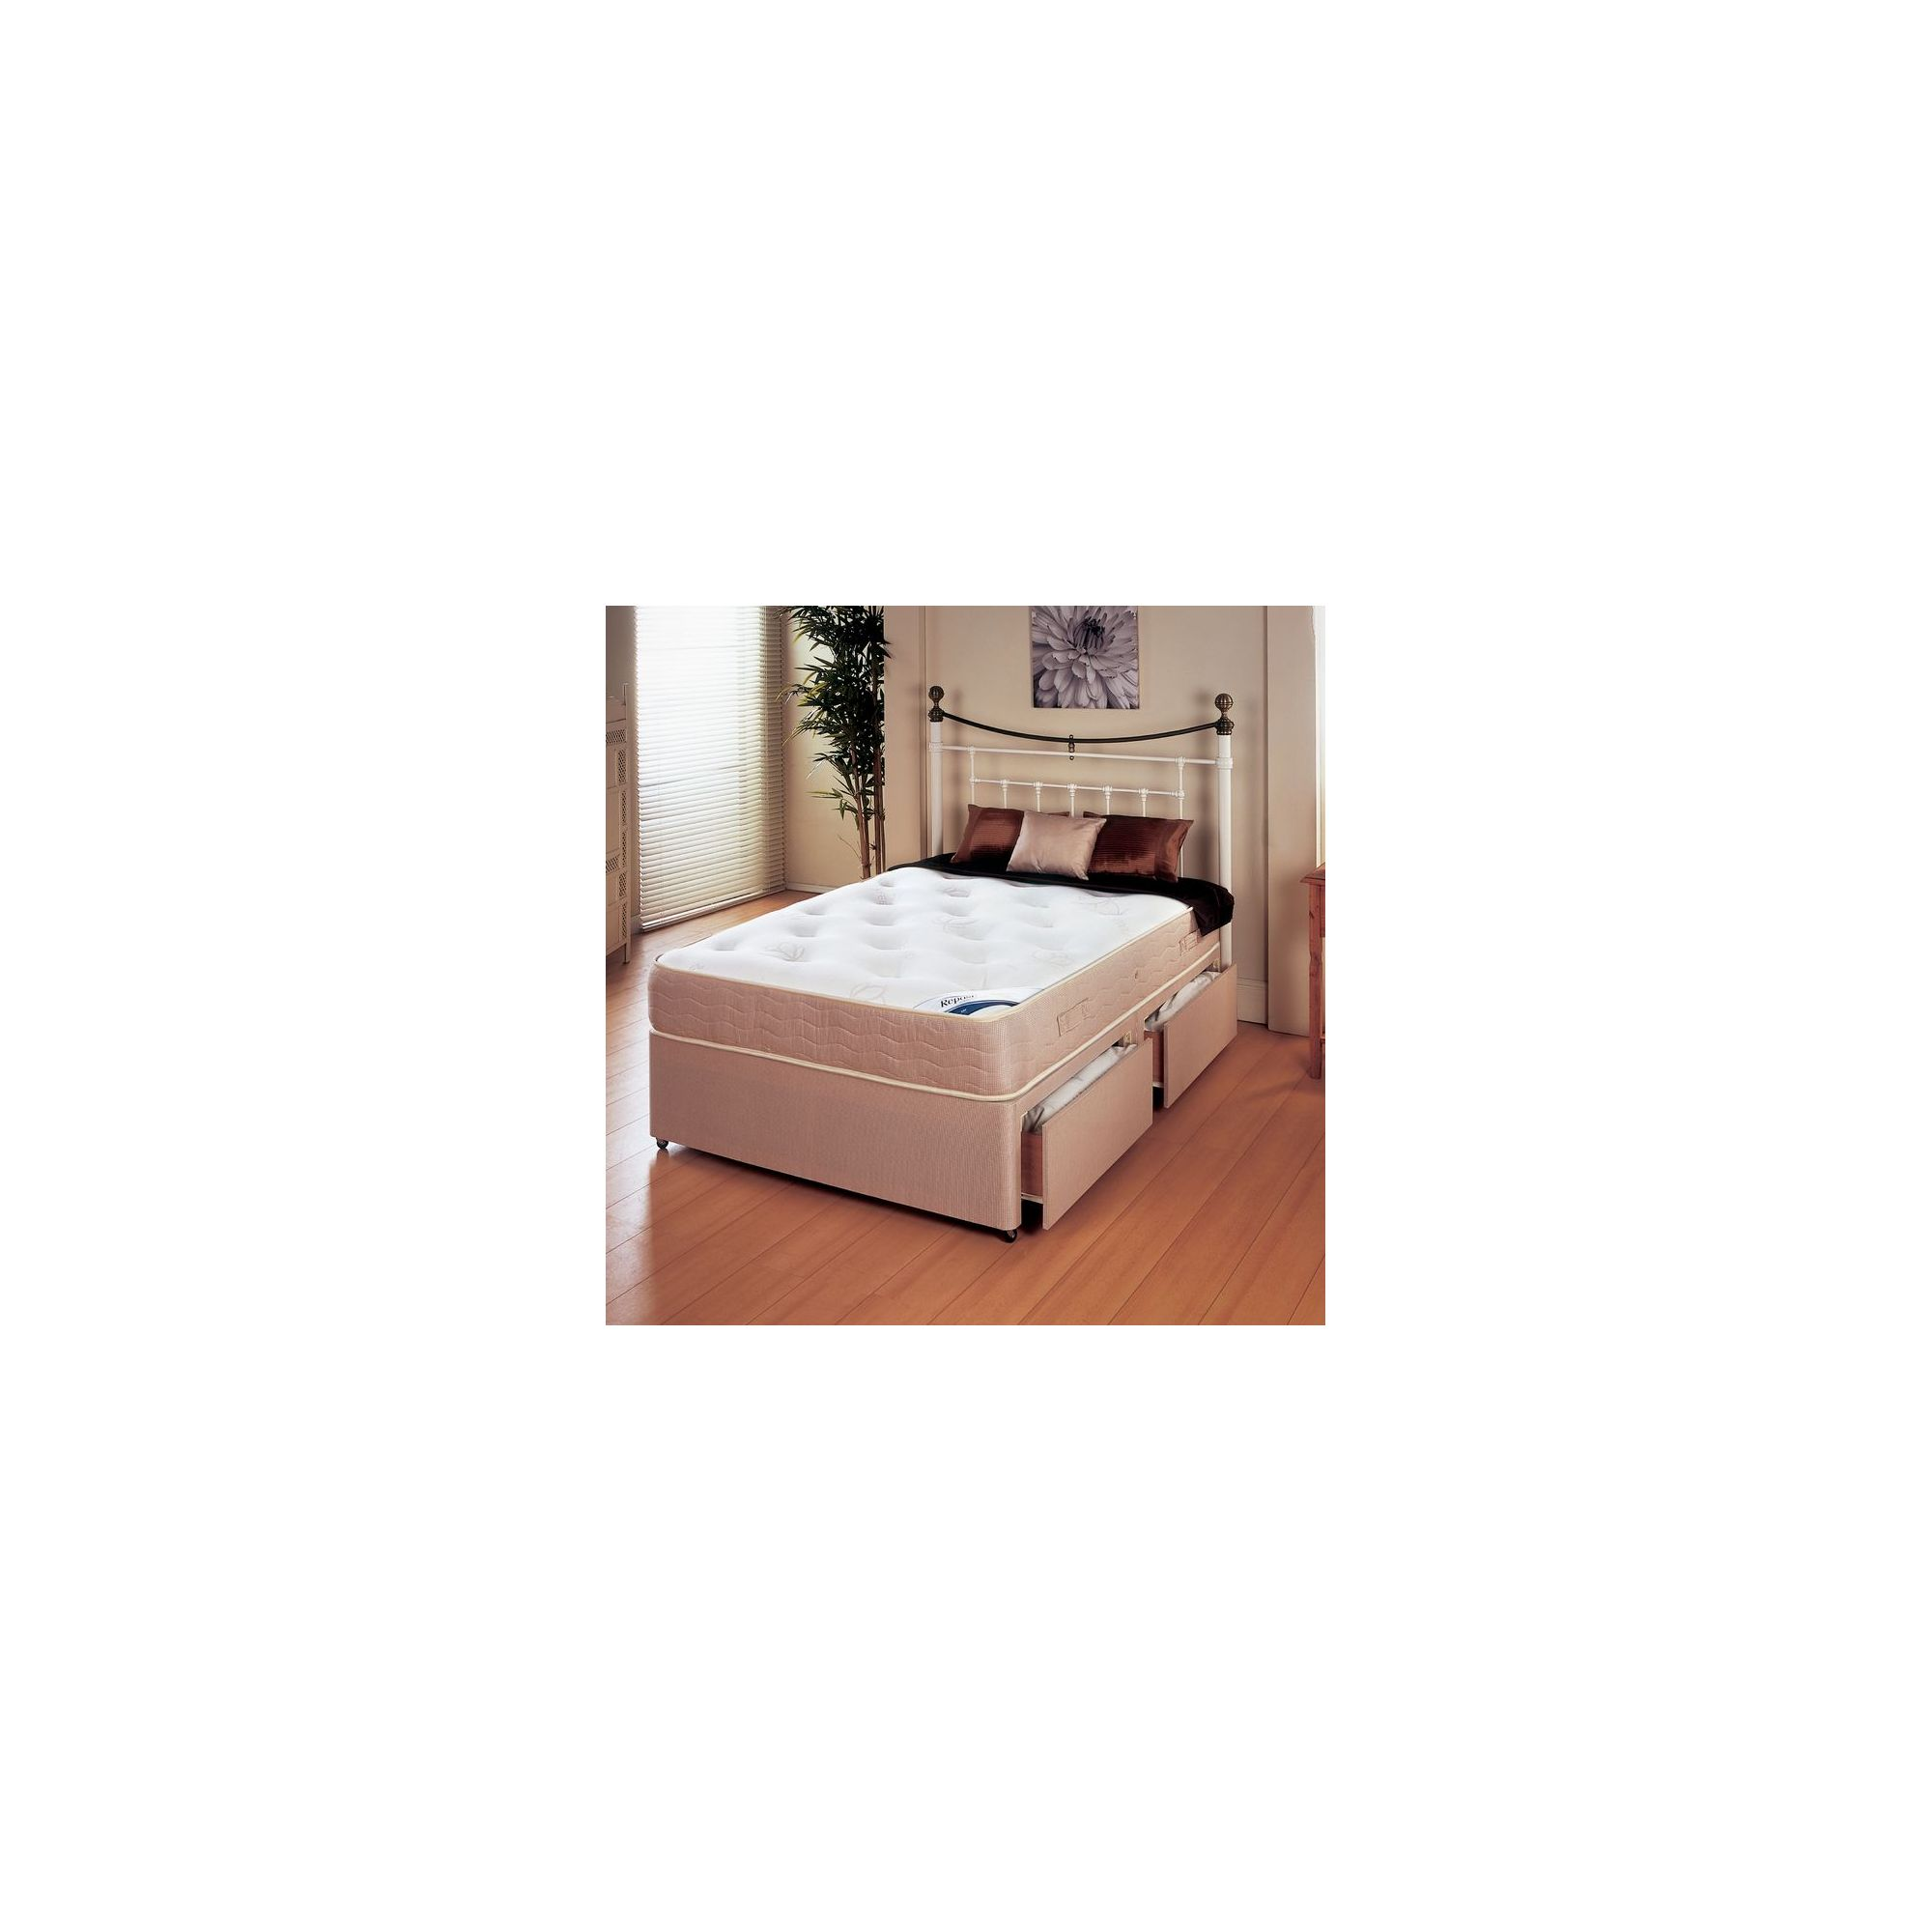 Repose New Princess 1000 Platform Set - Small Double/Double / 0 Drawer at Tesco Direct